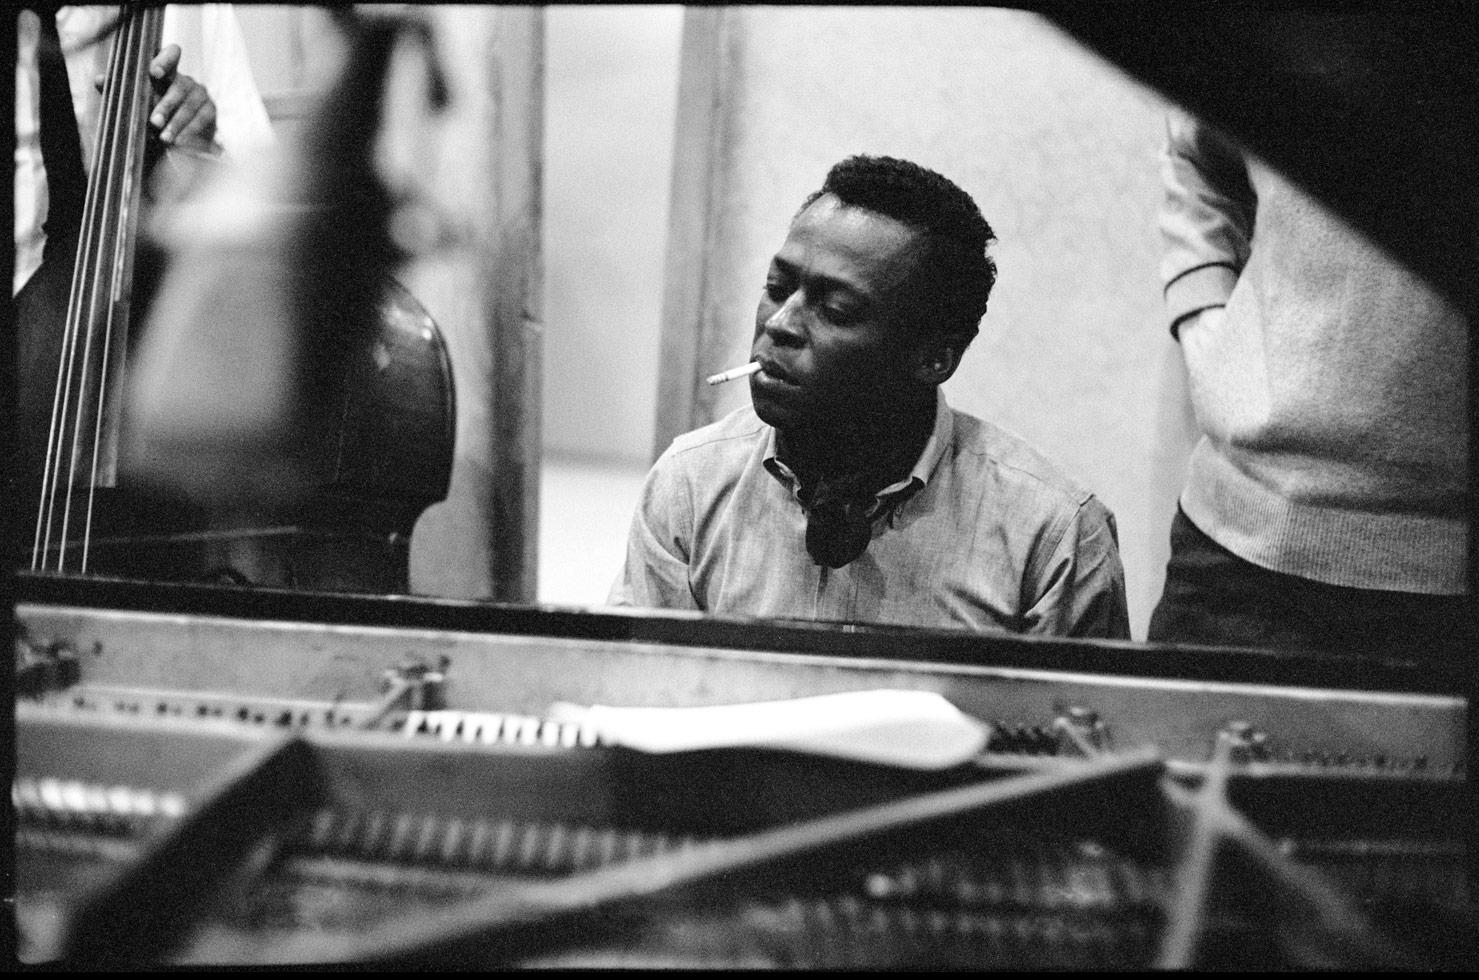 a brief biography of miles dewey davis an american musician Miles davis net worth is $10 million miles davis biography miles dewey davis iii was born on 26 may 1926, in alton, illinois usa, and was a bandleader, composer, and rated as one of the noted trumpeters of all time, best known for his various musical contributions to jazz.